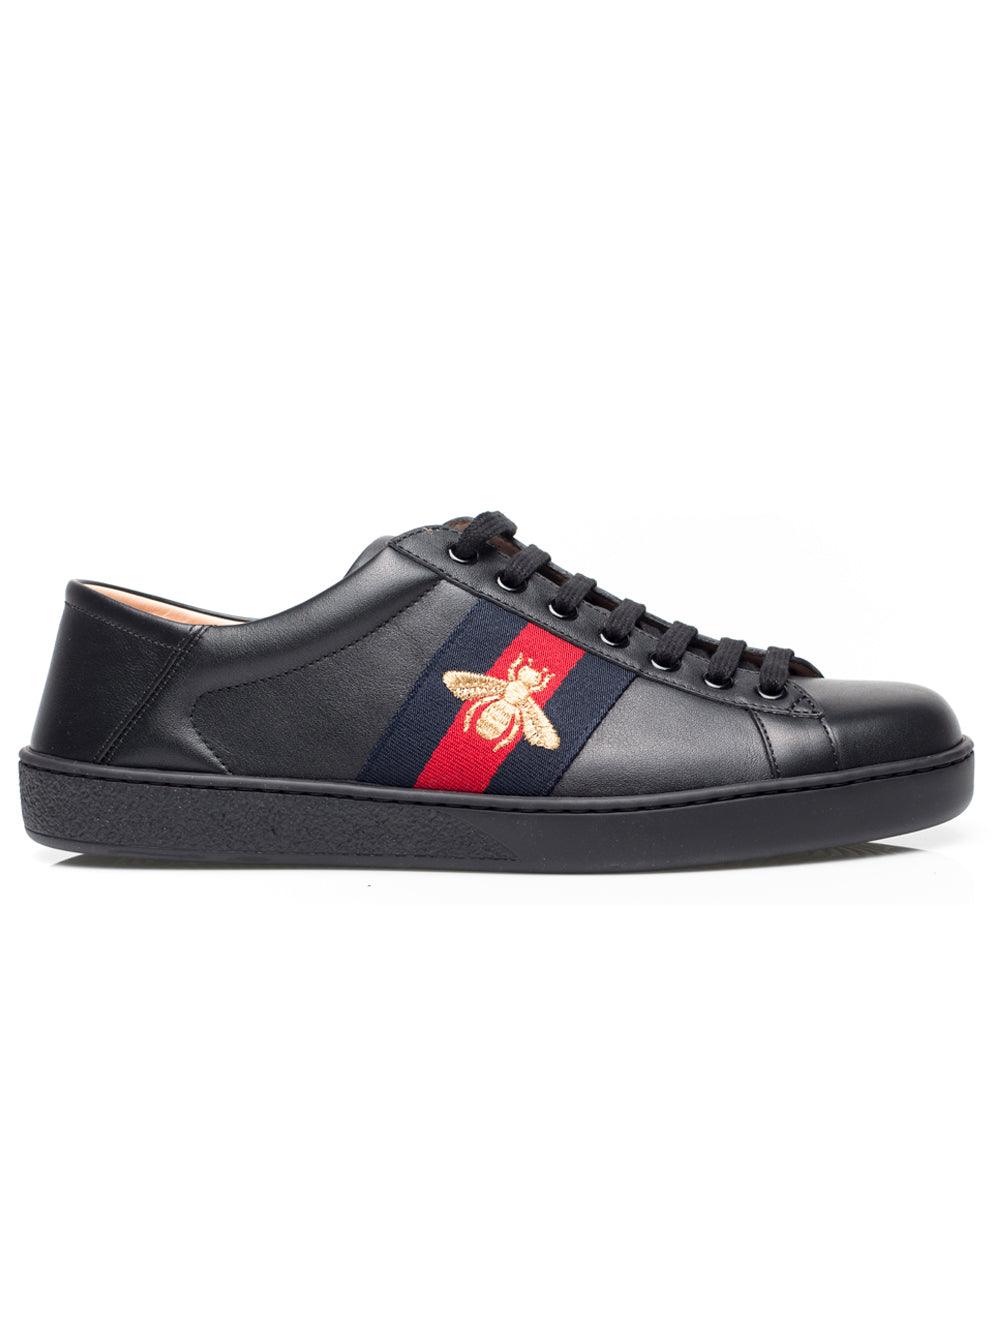 fd5c697e144 Gucci Mens Ace Leather Sneakers